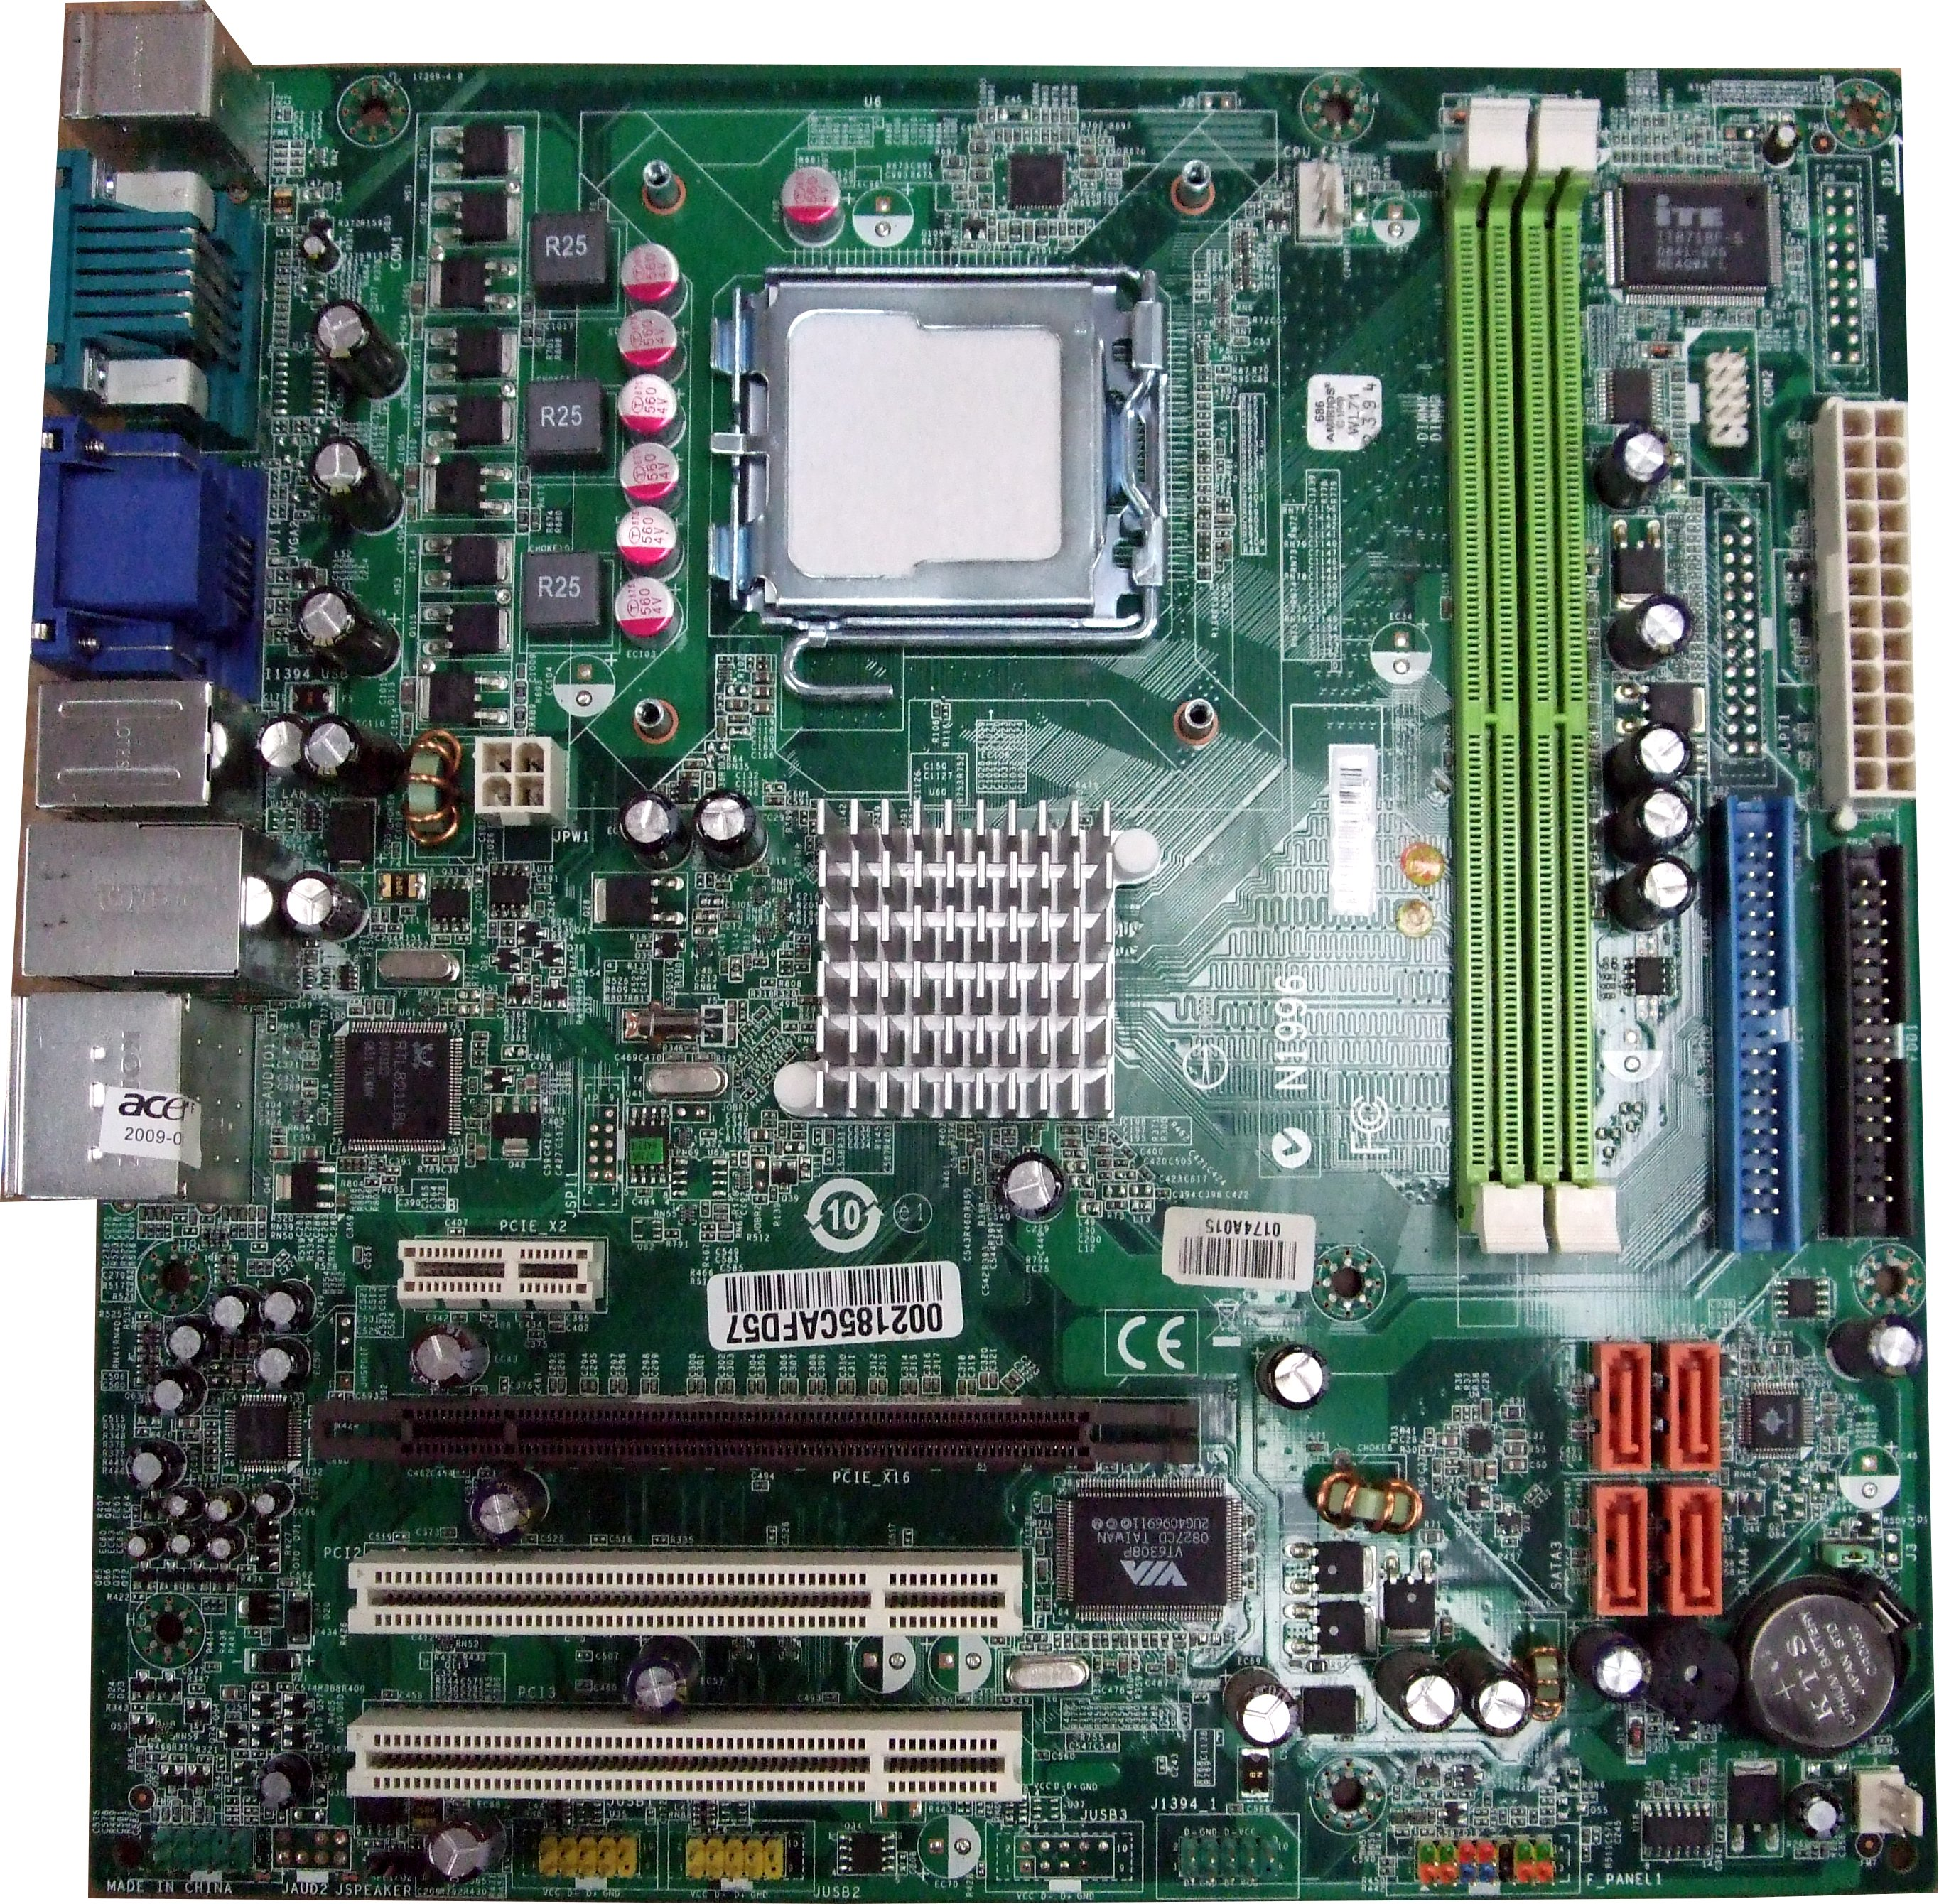 Acer Motherboard Manual download